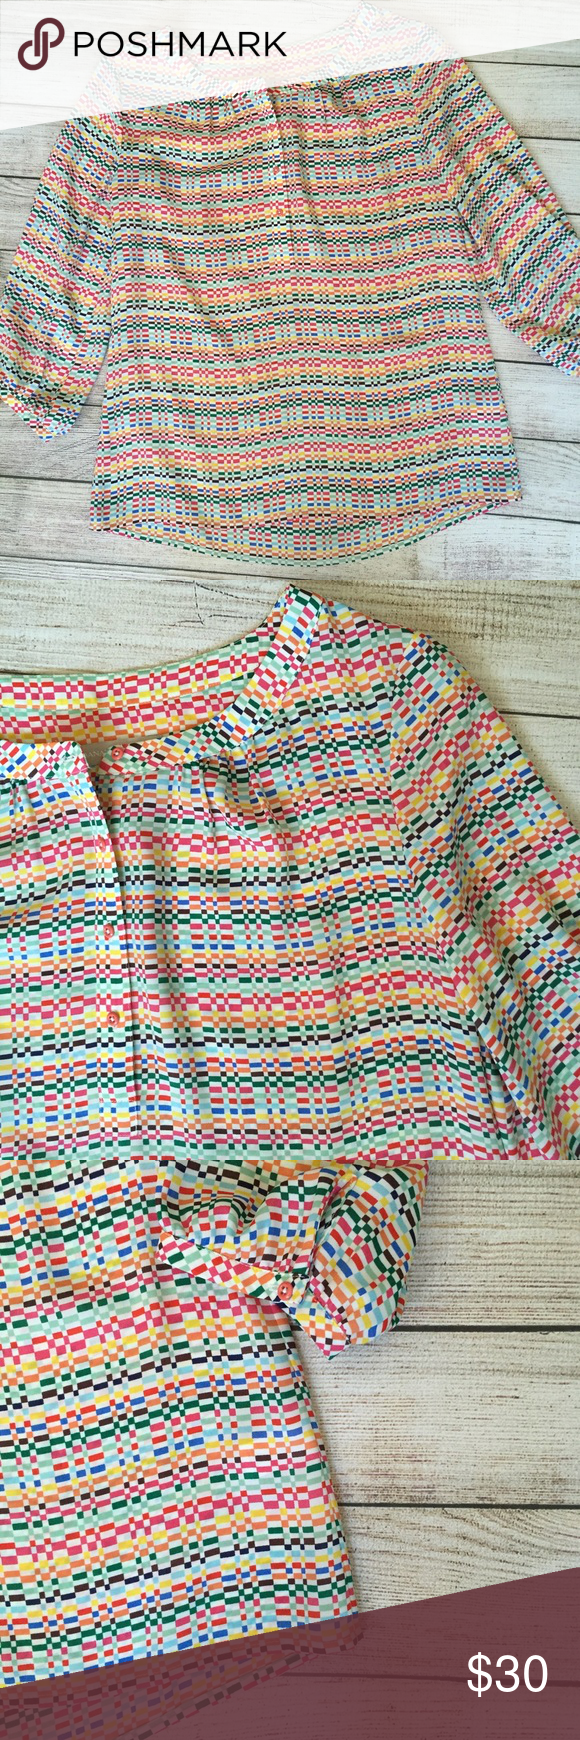 """Banana Republic Multi-Color Blouse Multi-color print throughout. 3/4 sleeves with button detail. Loose fit. 25""""L shoulder to hem. 100% polyester. EUC- no signs of wear. 🚫NO TRADES/NO MODELING🚫 Banana Republic Tops Blouses"""